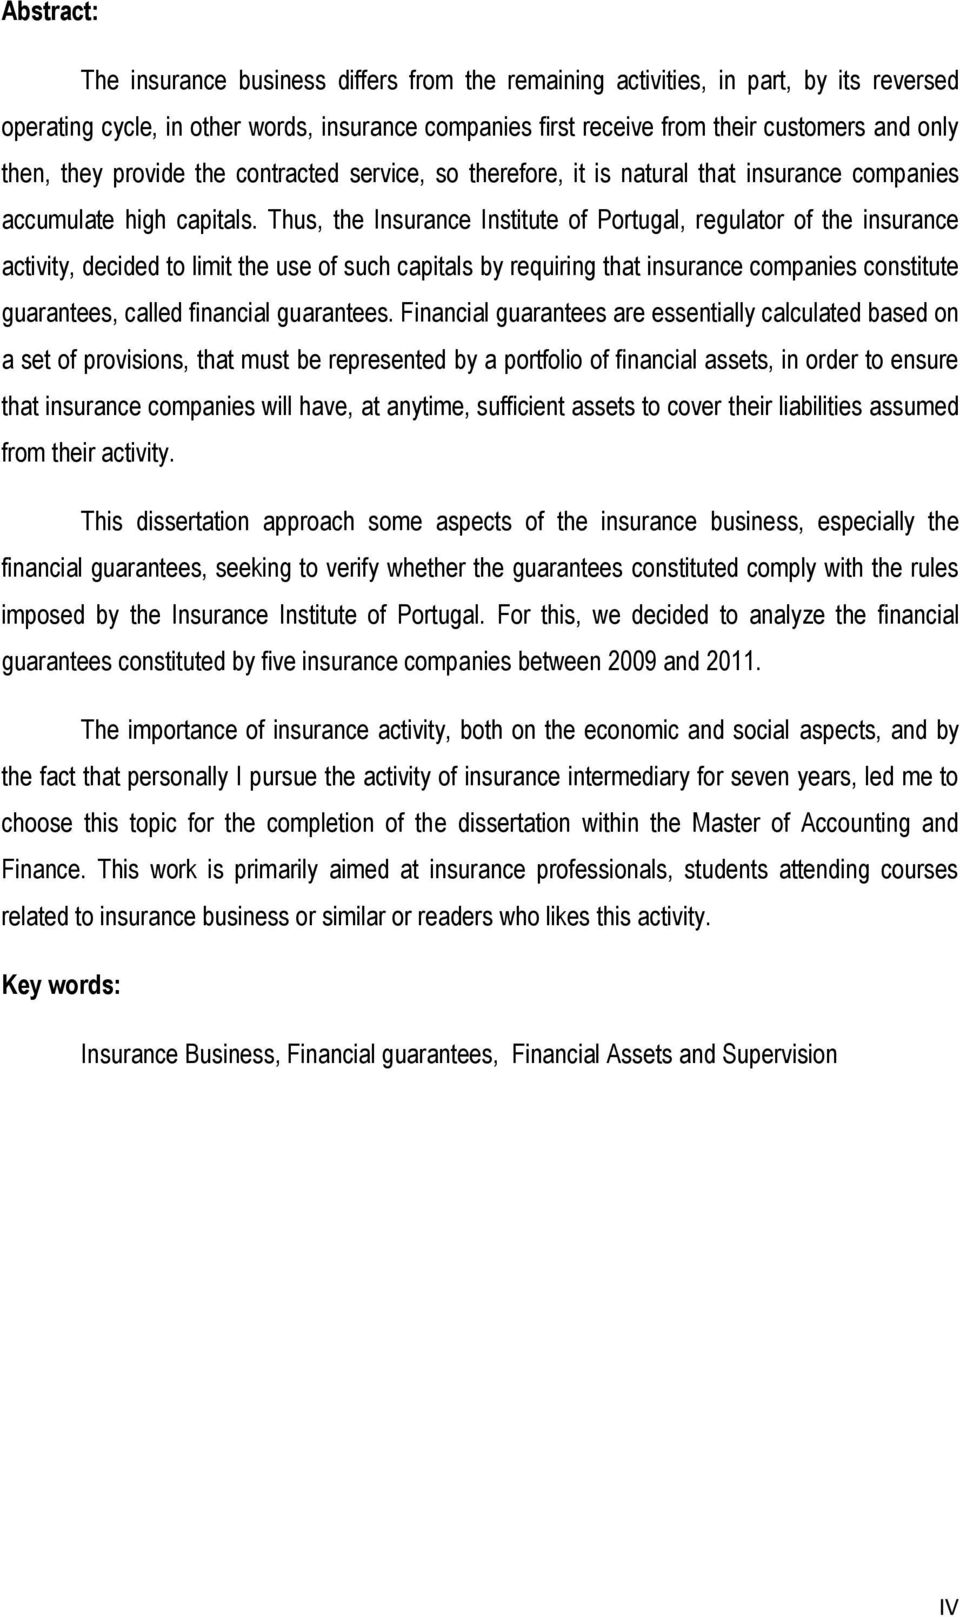 Thus, the Insurance Institute of Portugal, regulator of the insurance activity, decided to limit the use of such capitals by requiring that insurance companies constitute guarantees, called financial